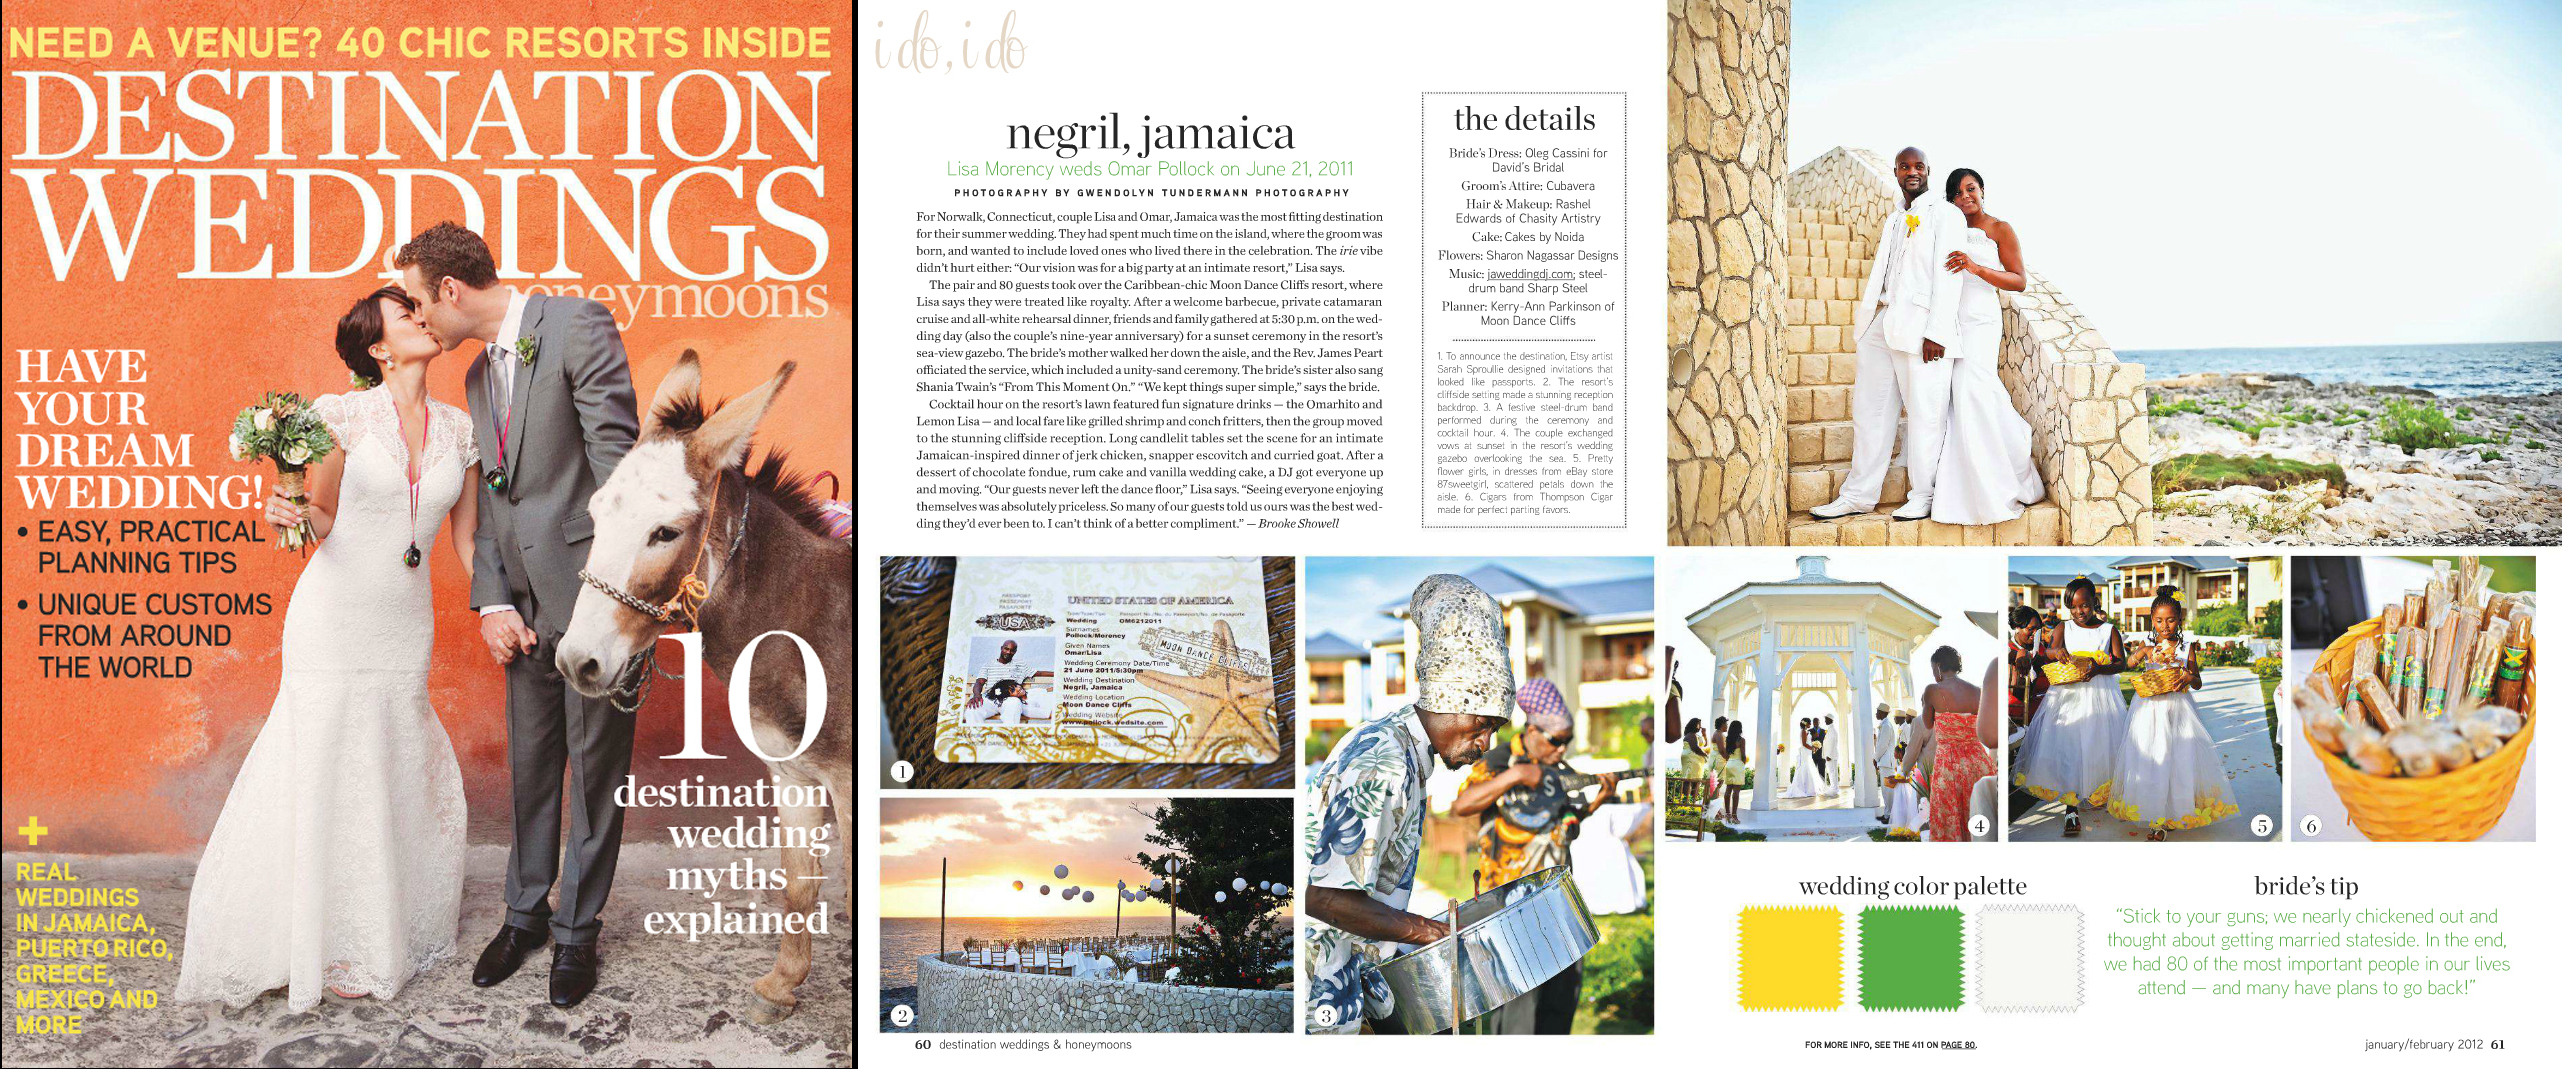 Destination Weddings & Honeymoons - Jan 2012 Cover and Spread